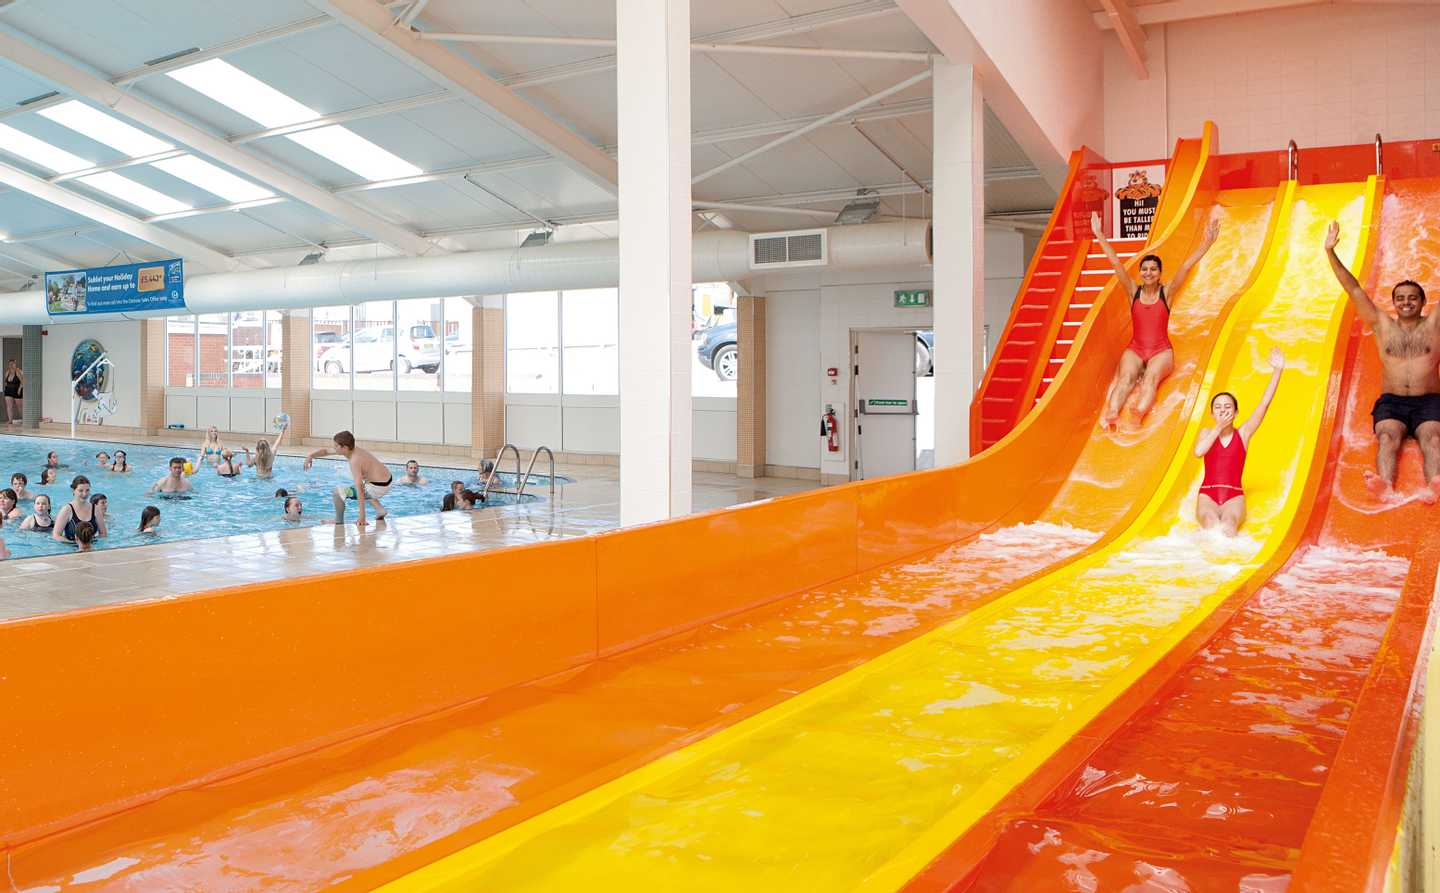 Guests whizzing down the indoor water slide